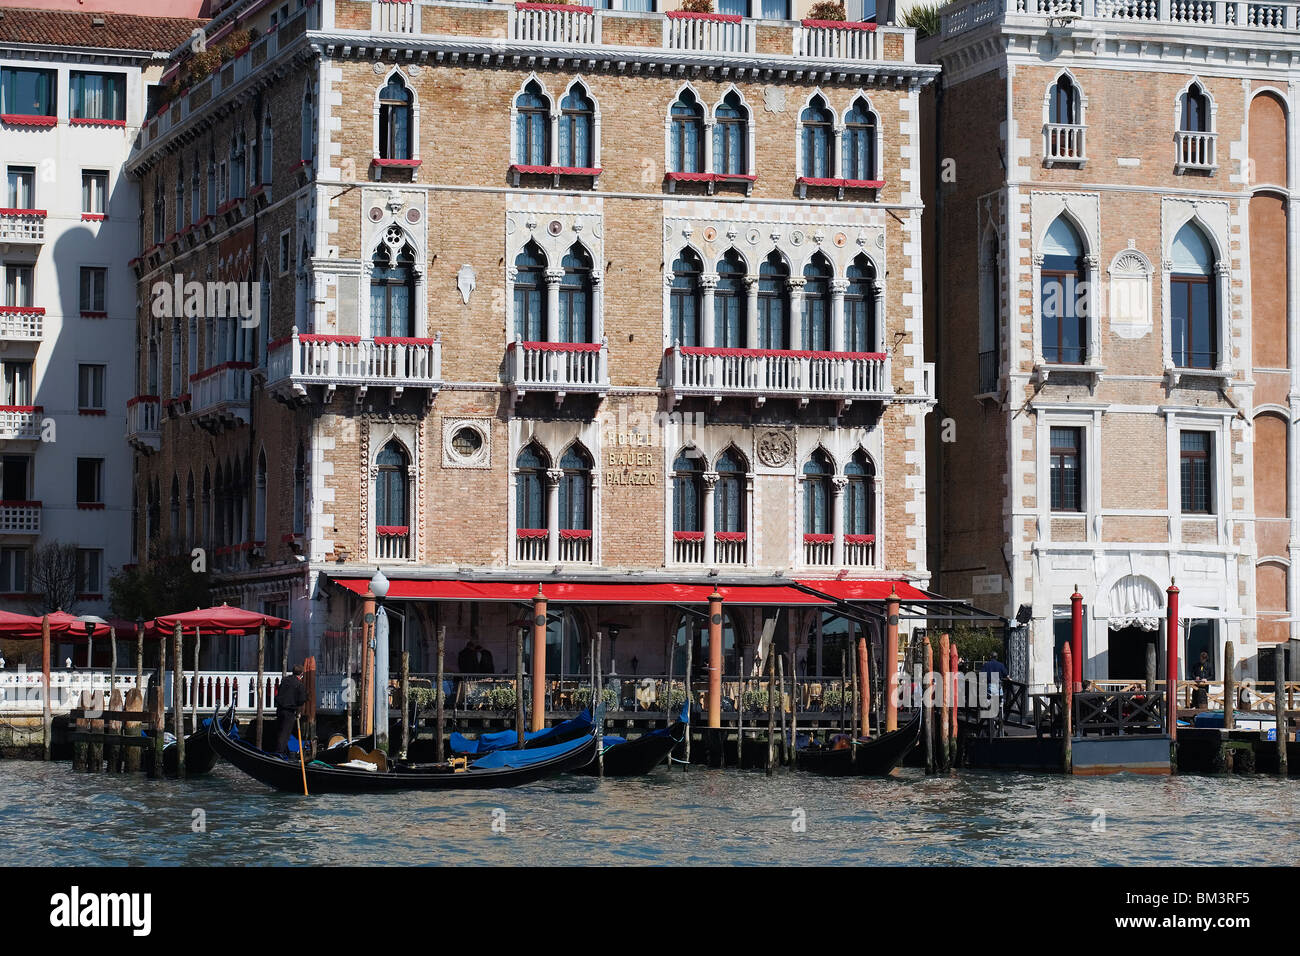 Venice - Hotel Bauer Palazzo - View from the Grand Canal - Stock Image